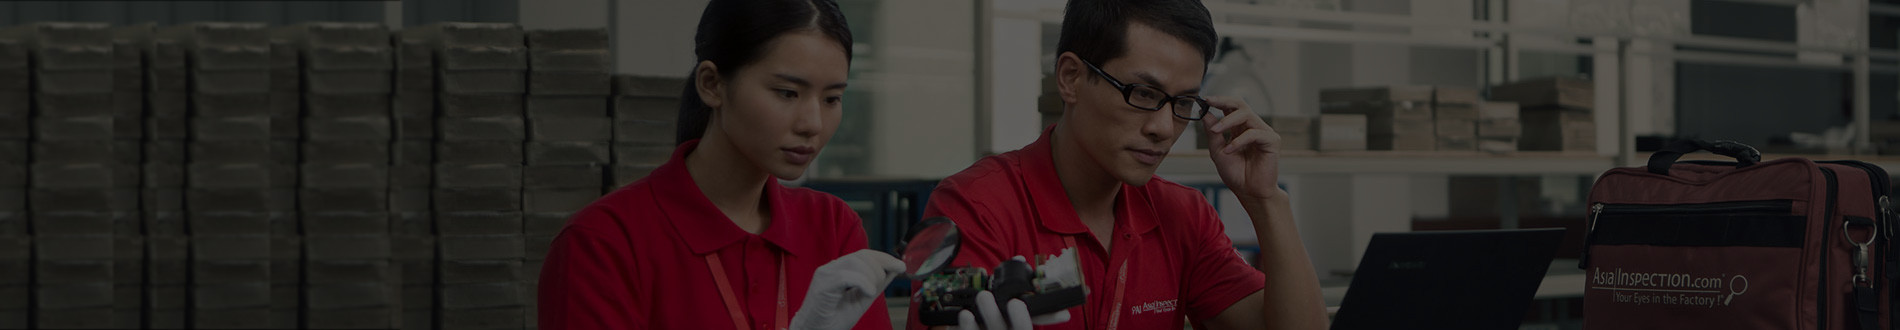 Hardlines - Quality Control in Manufacturing | AsiaInspection